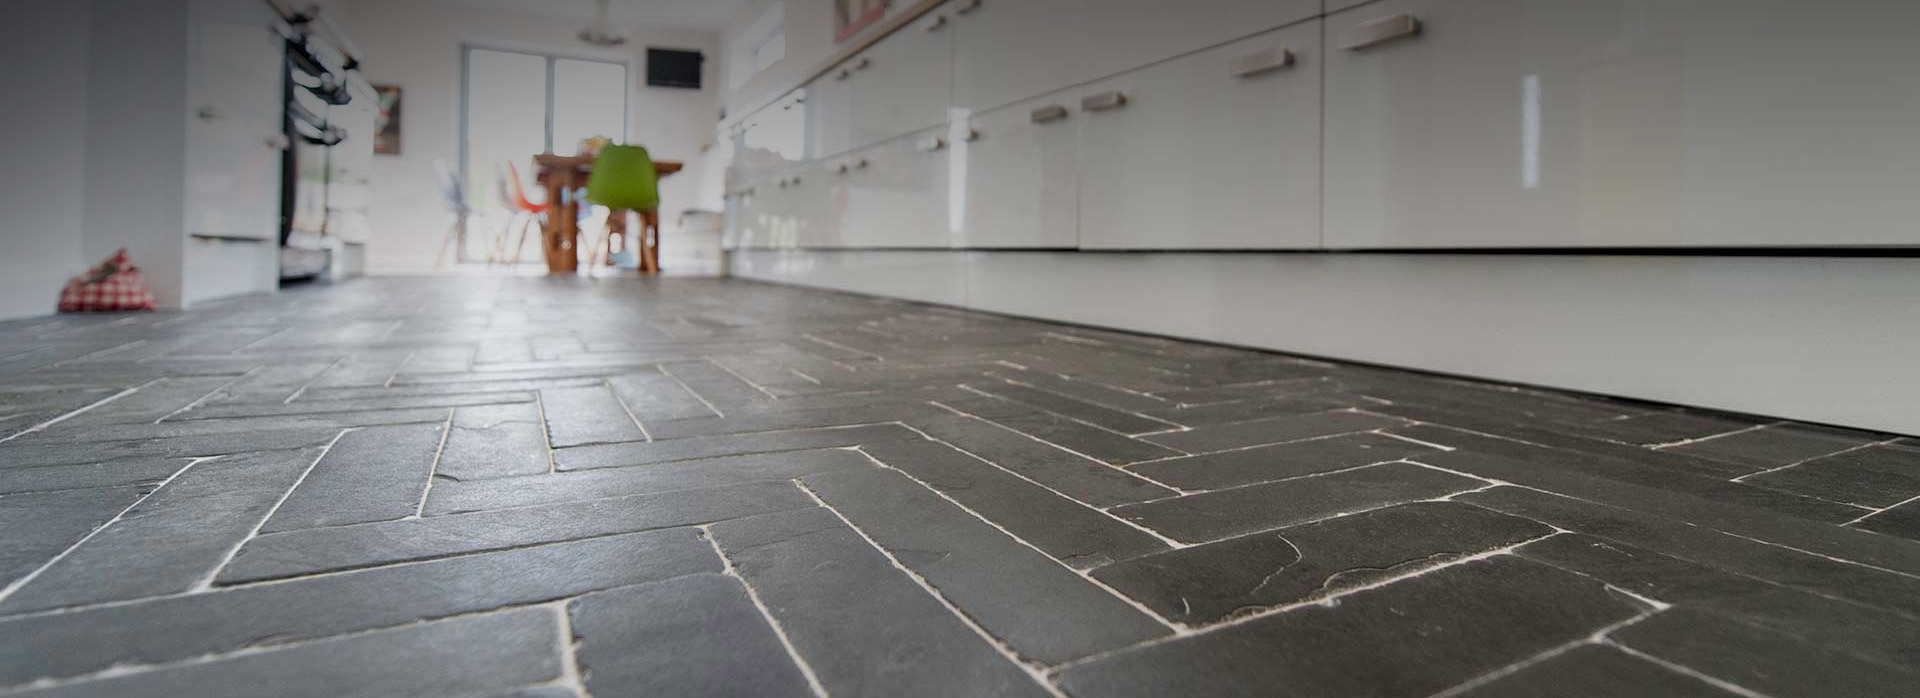 Limestone Floor Tiles As Oldest Material For Floor Decoration